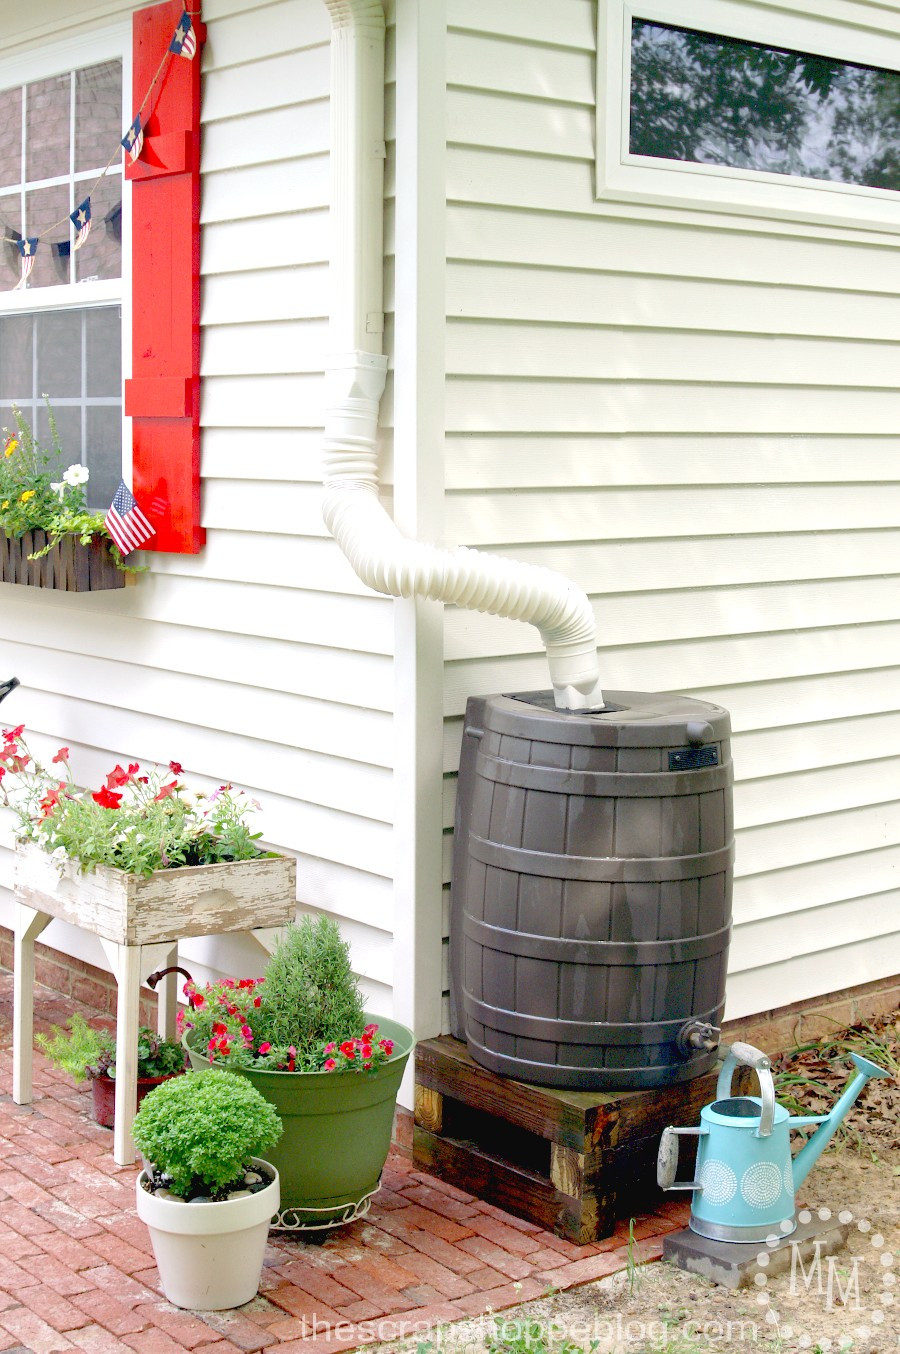 Best ideas about Rain Barrel DIY . Save or Pin How to Install a Rain Barrel The Scrap Shoppe Now.